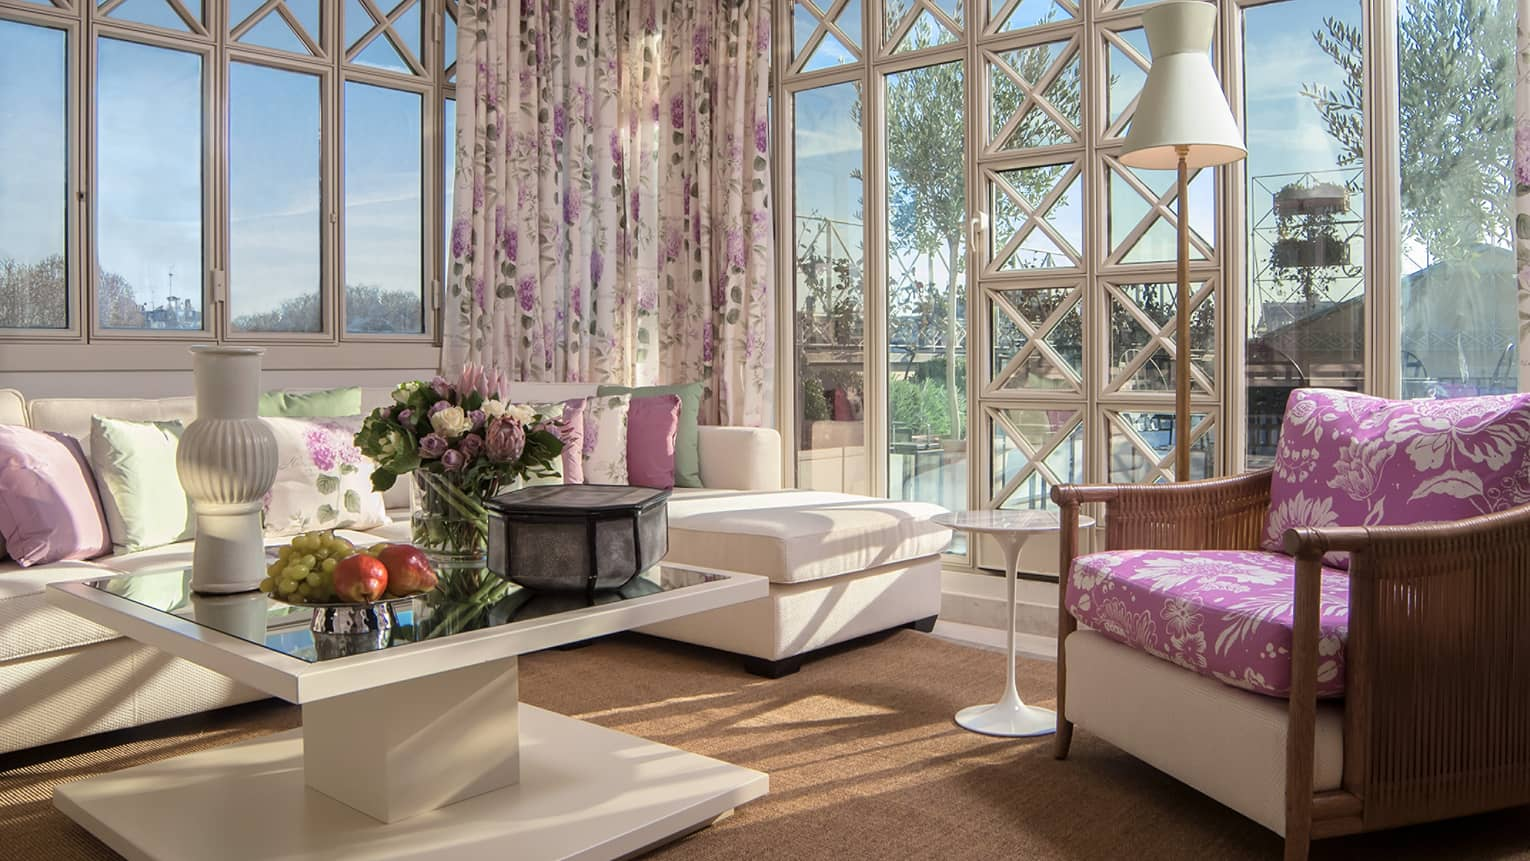 Sunny Presidential Suite, white sofas, lavender floral accent pillows, curtains by glass walls